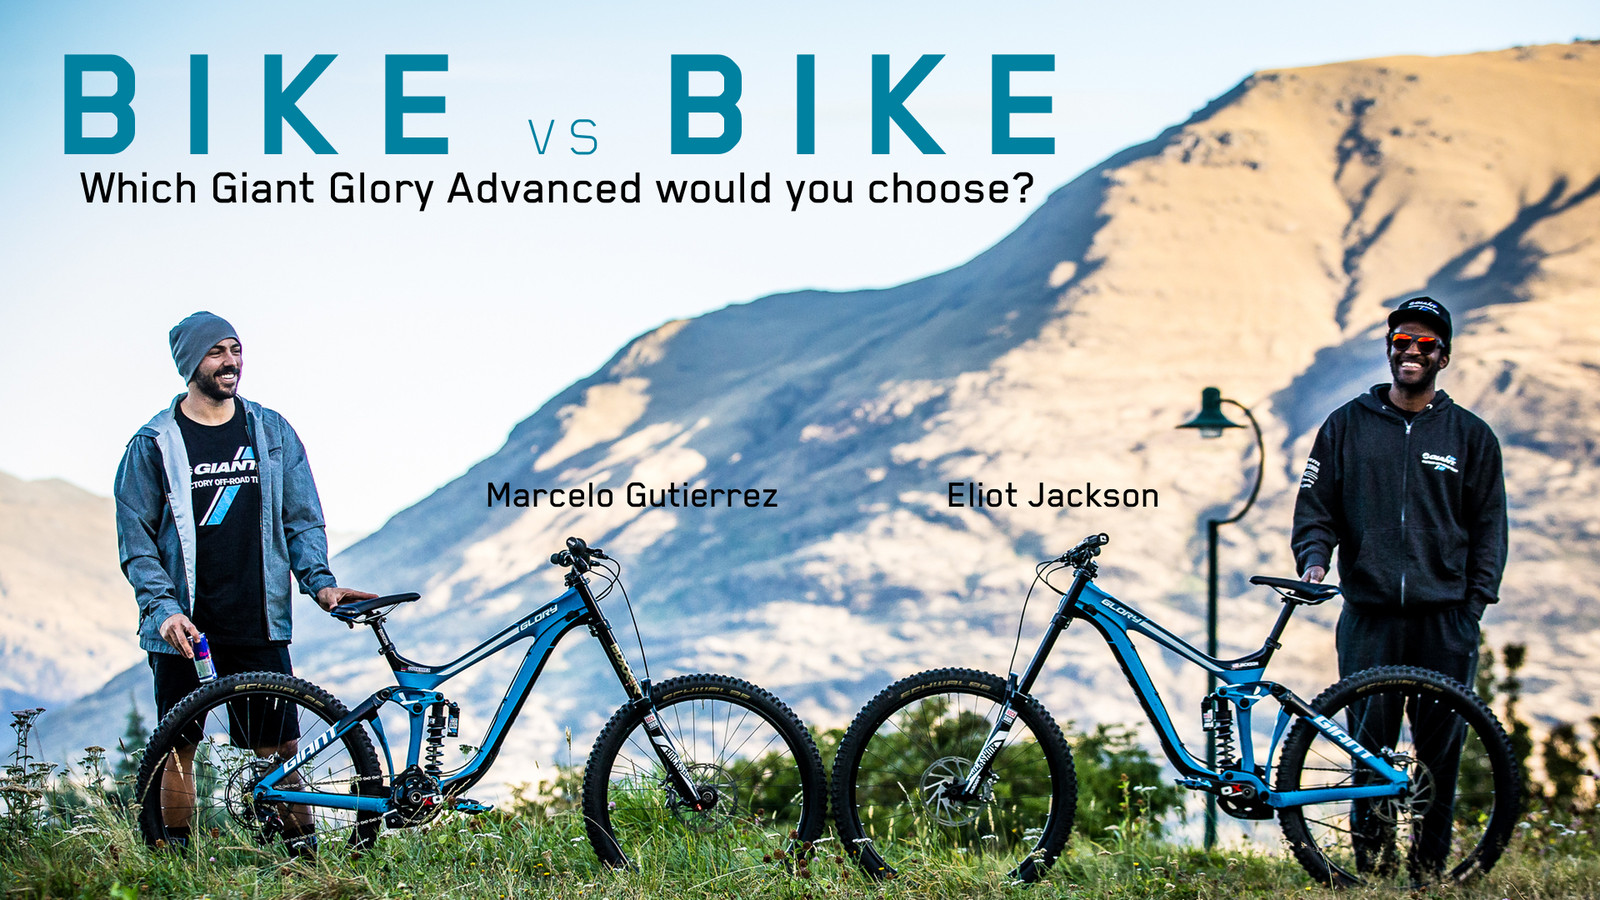 Bike vs. Bike - Giant Glory Advanced - Eliot Jackson vs. Marcelo Gutierrez